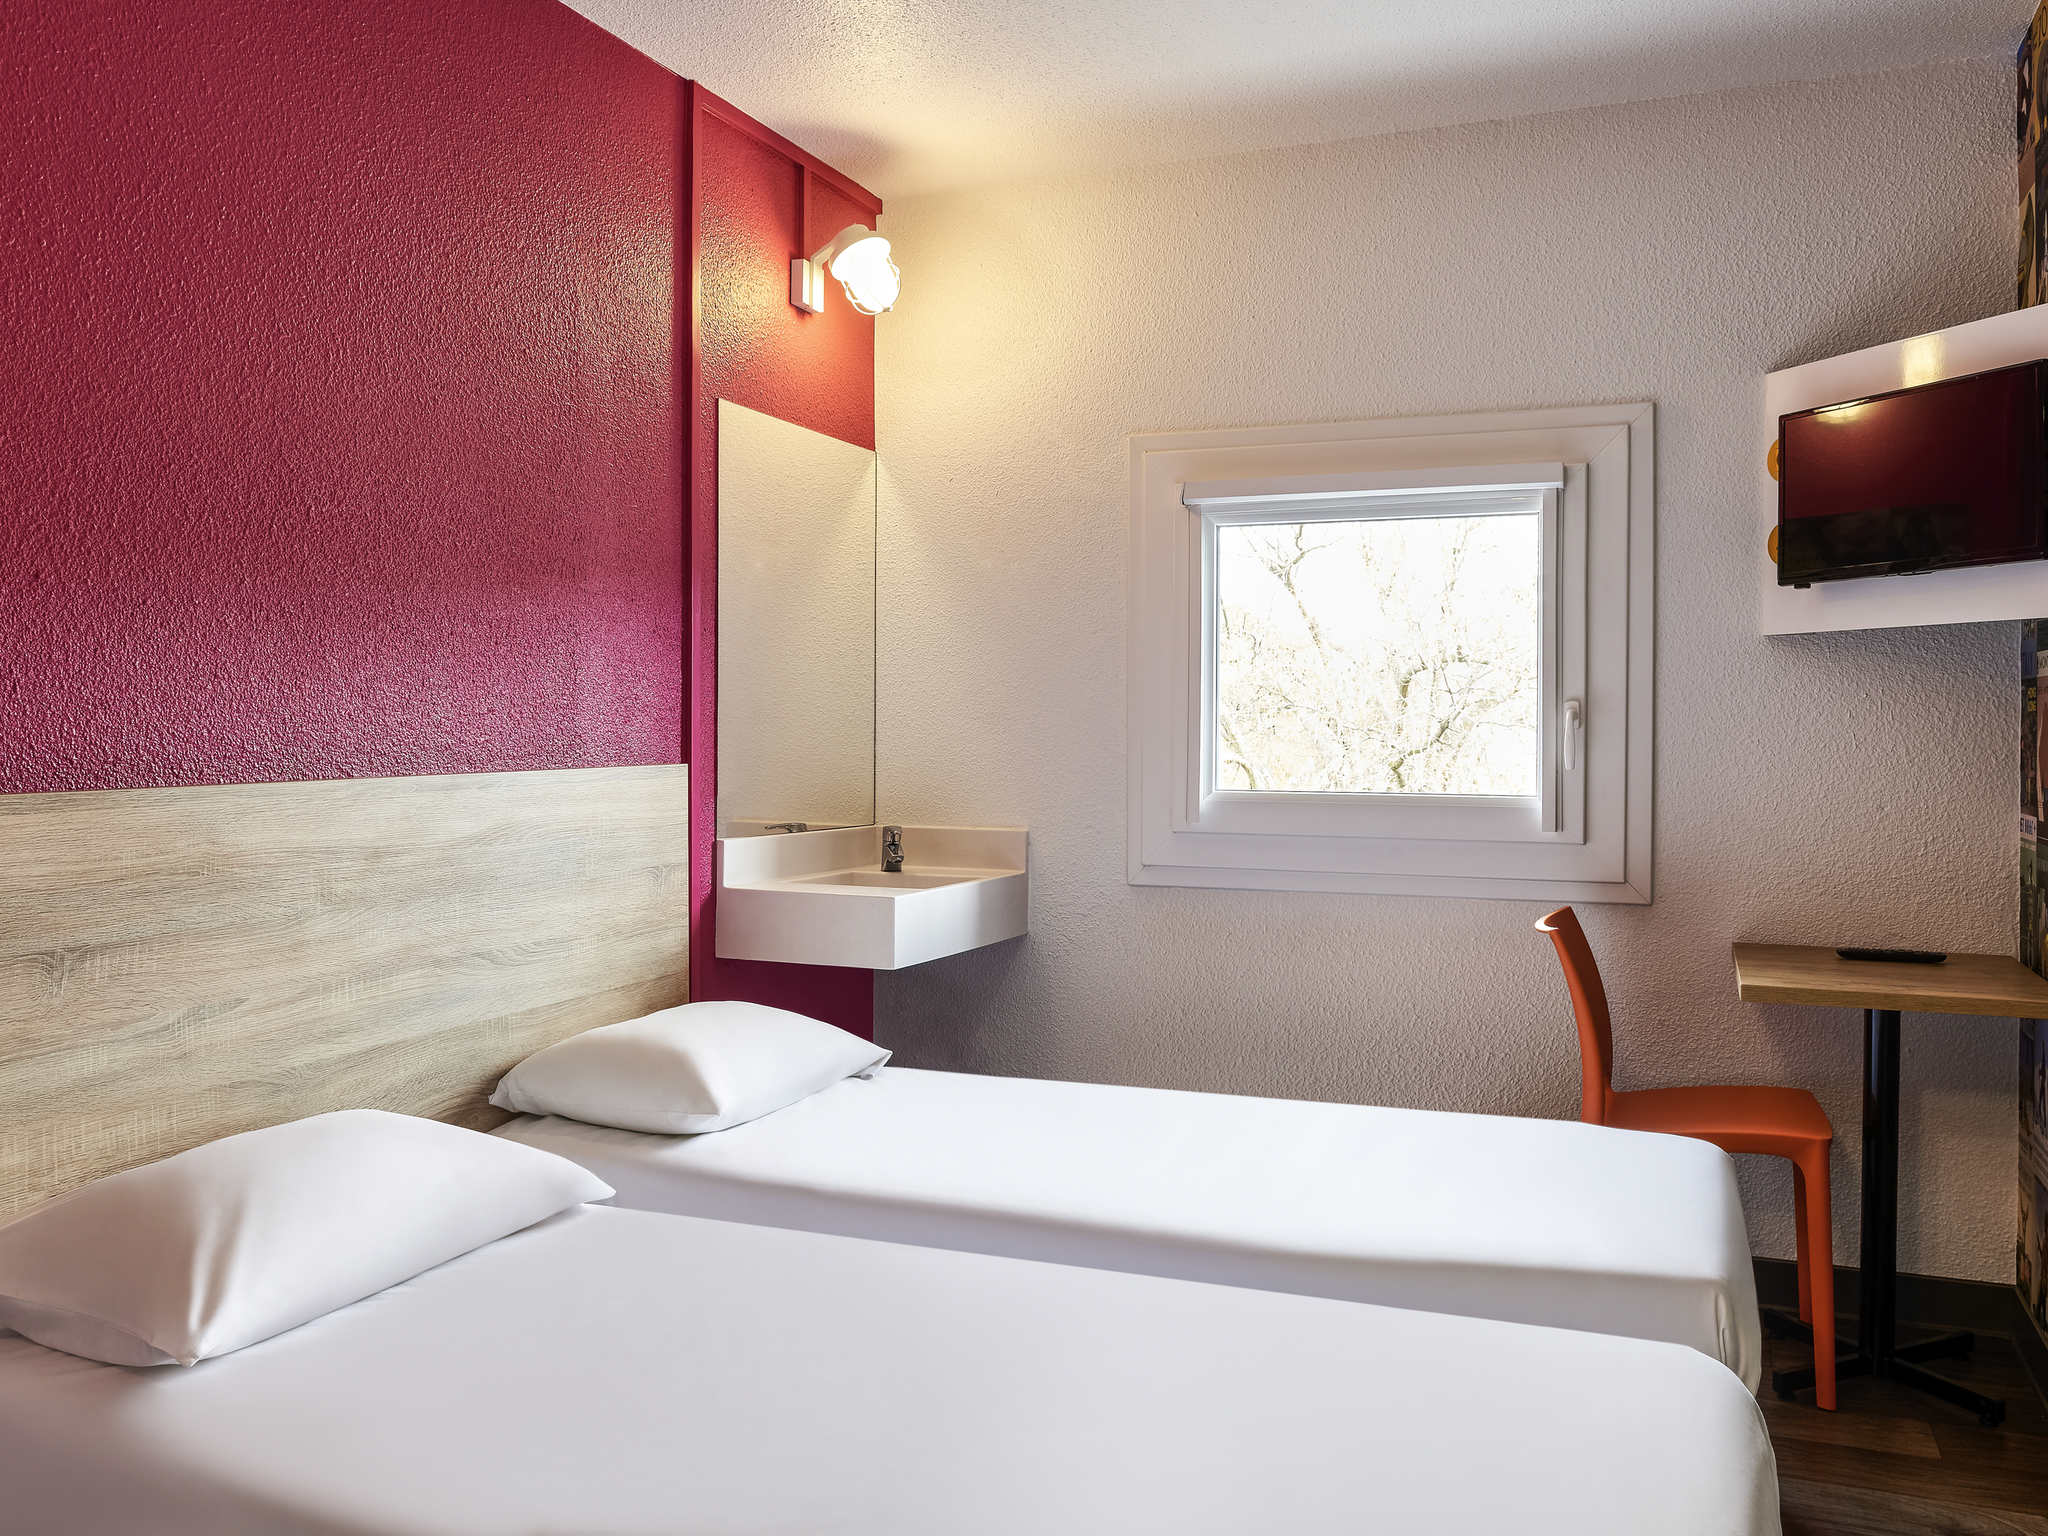 hotel in ecuelles hotelf1 moret fontainebleau. Black Bedroom Furniture Sets. Home Design Ideas